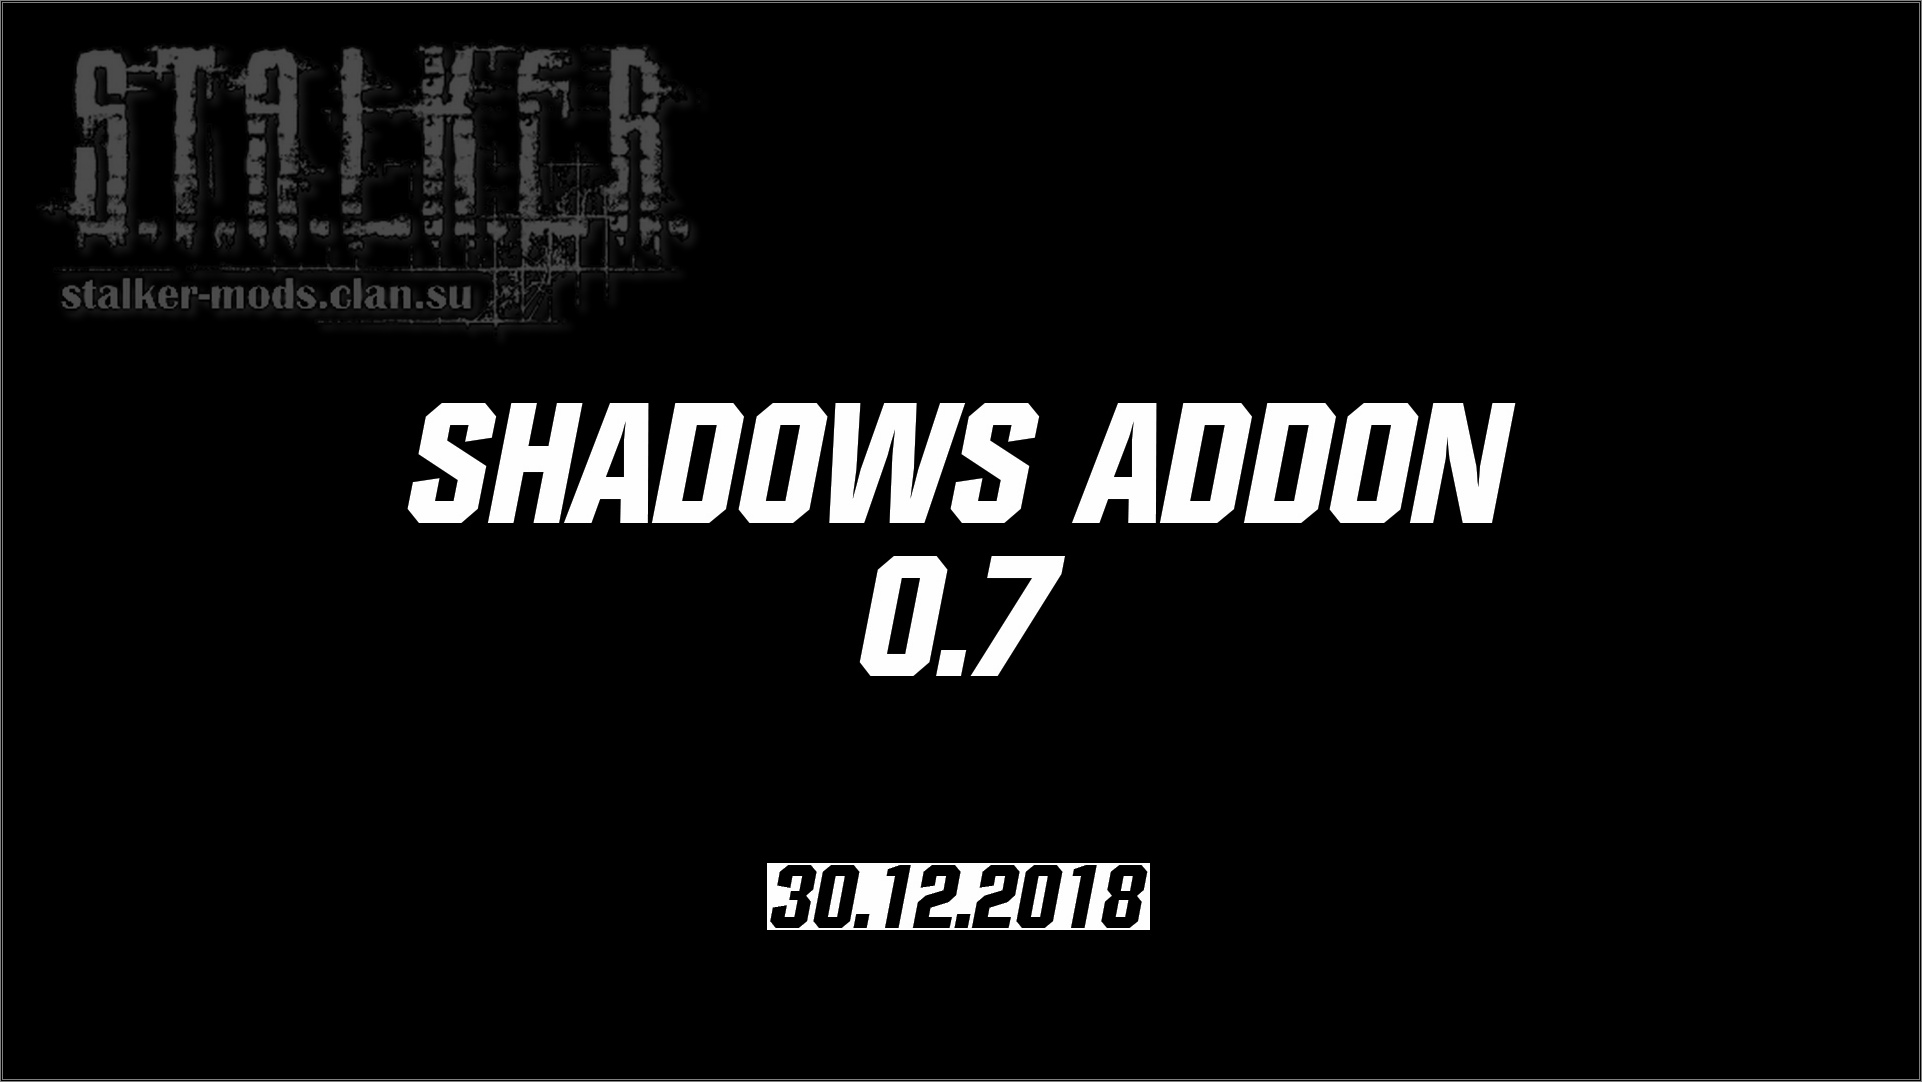 Shadows Addon 0.7